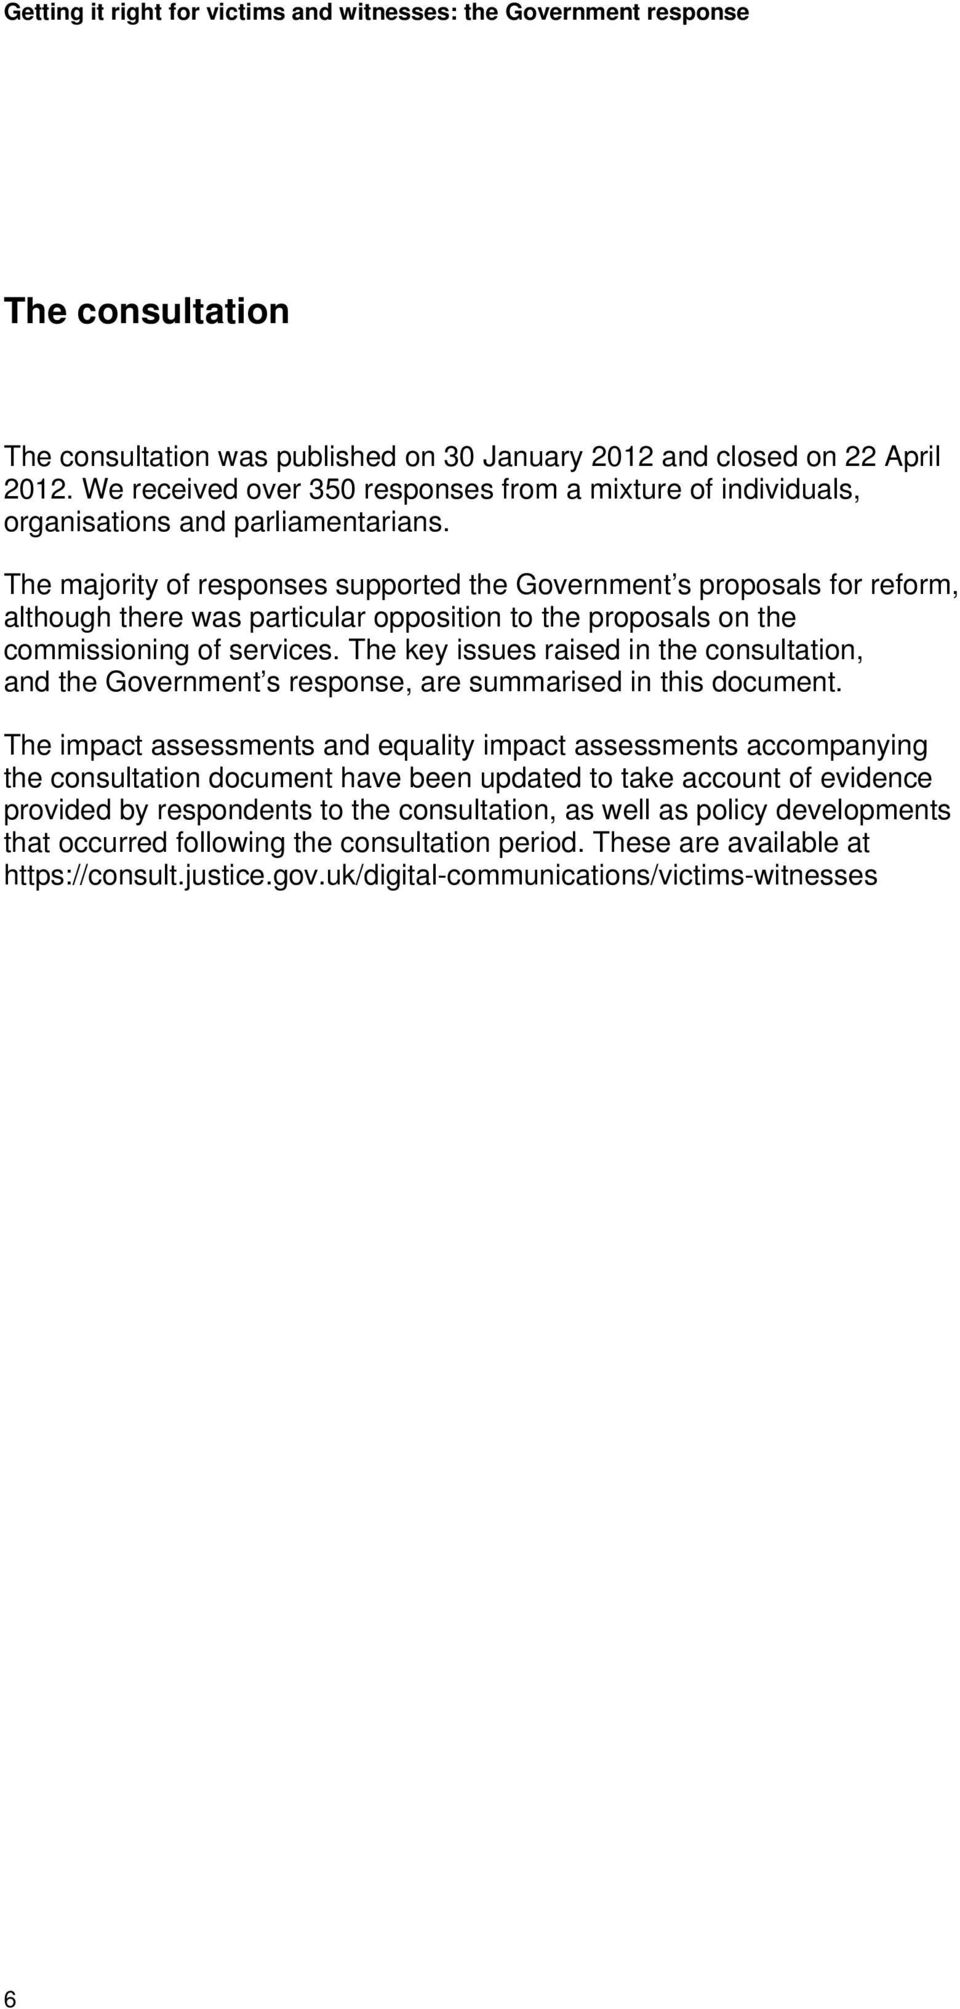 The key issues raised in the consultation, and the Government s response, are summarised in this document.